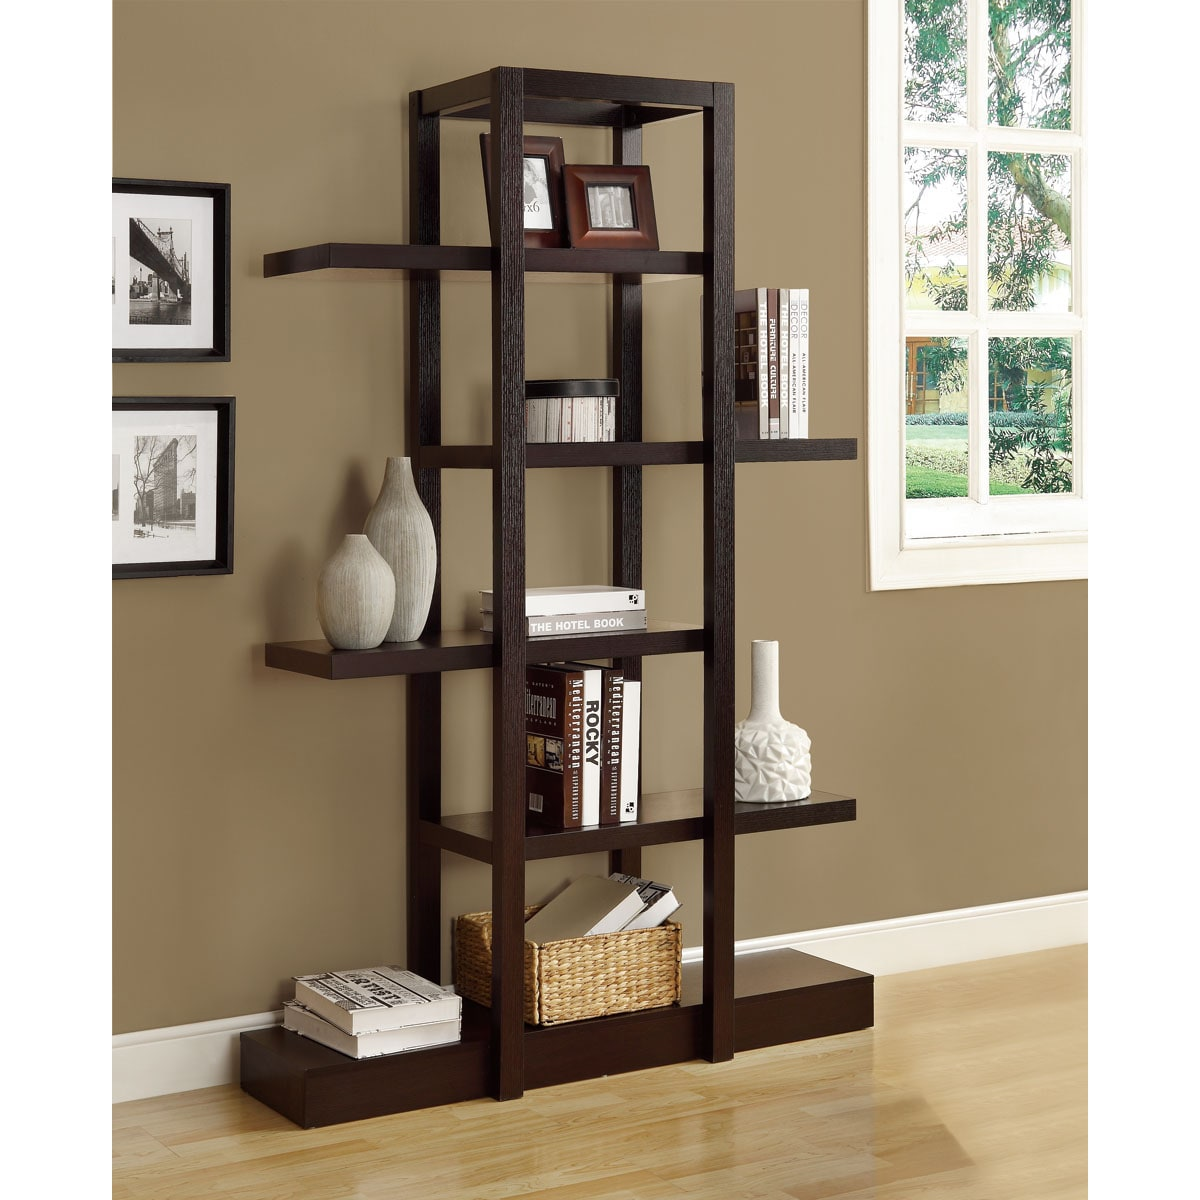 Cappuccino 71 inch Open Display Shelf Free Shipping